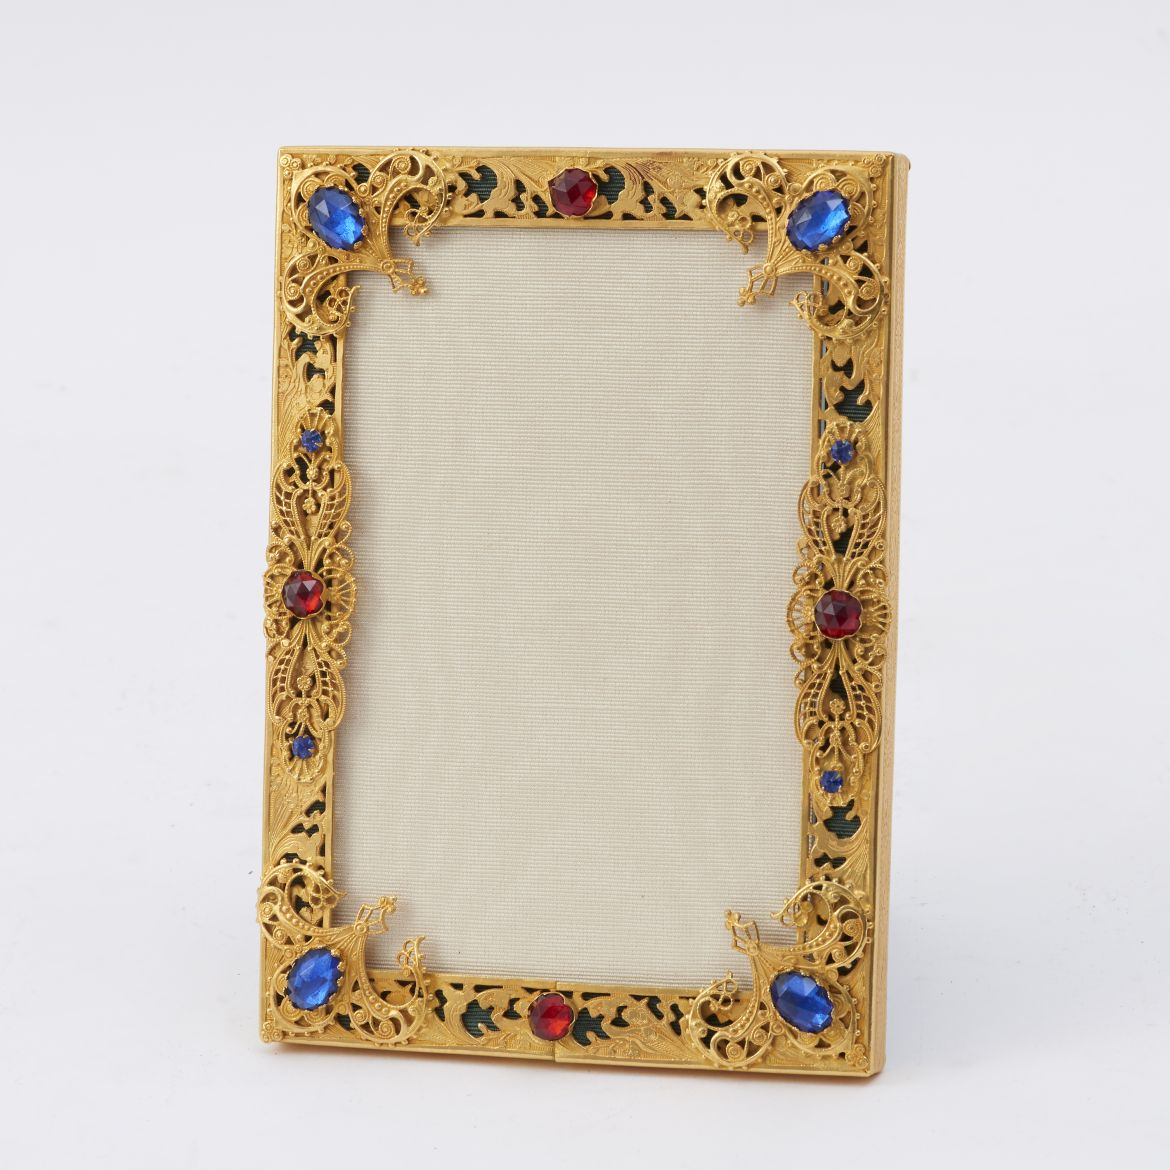 Frame Overlaid With Paste Stones